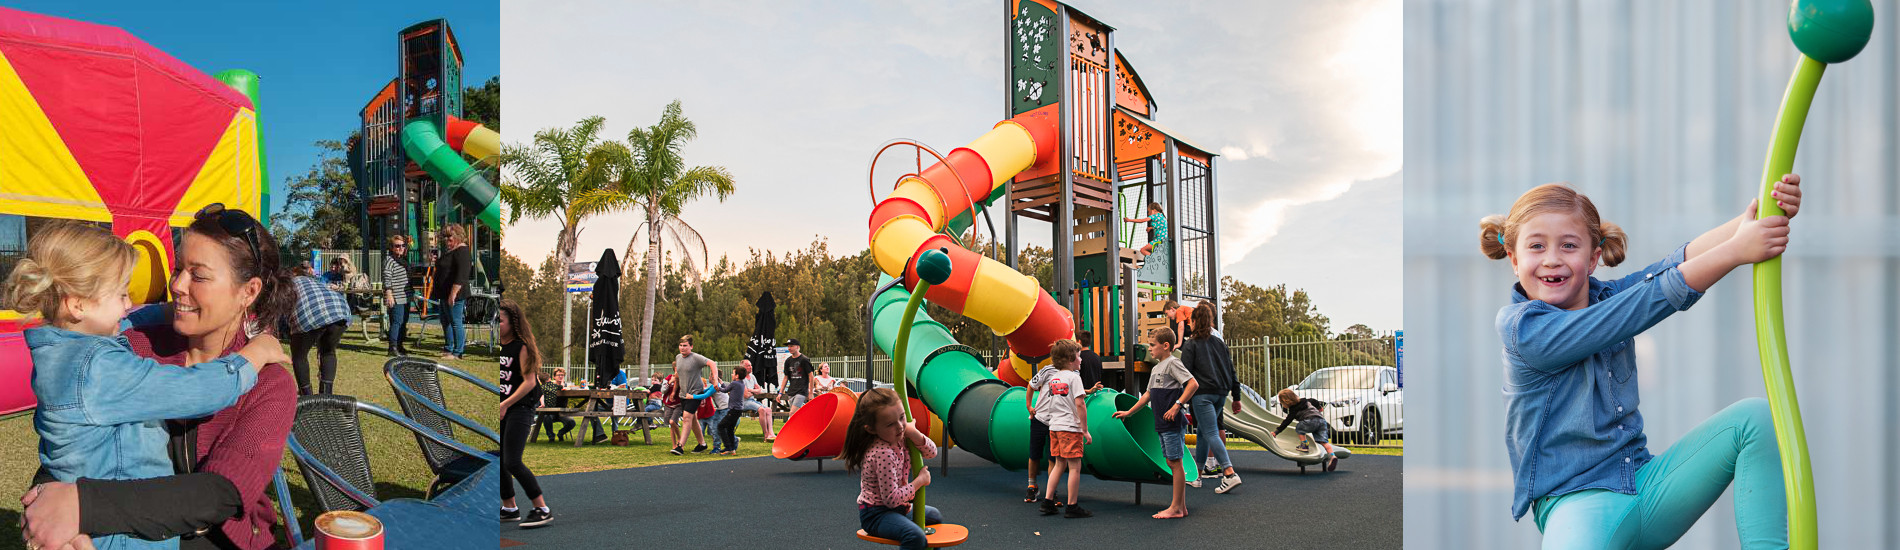 Tomakin Club playground - things to do in and around Batemans Bay for kids